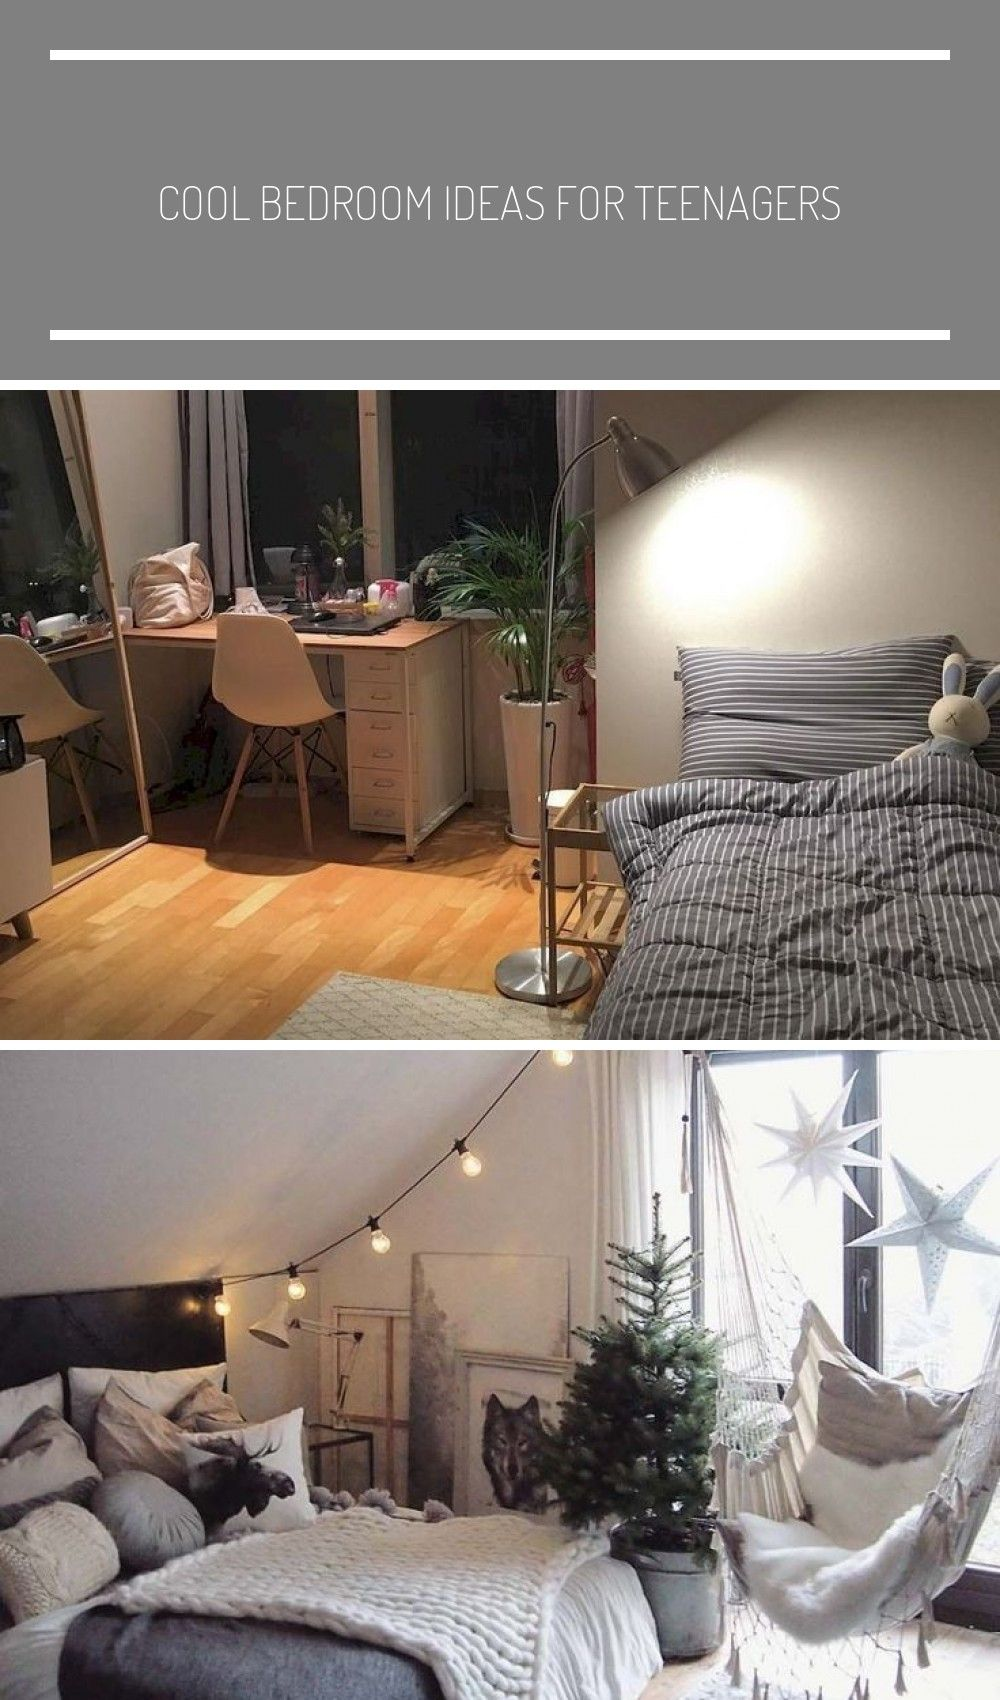 20 Recommended Small Bedroom Ideas 2019 Smallbedroomideas Small